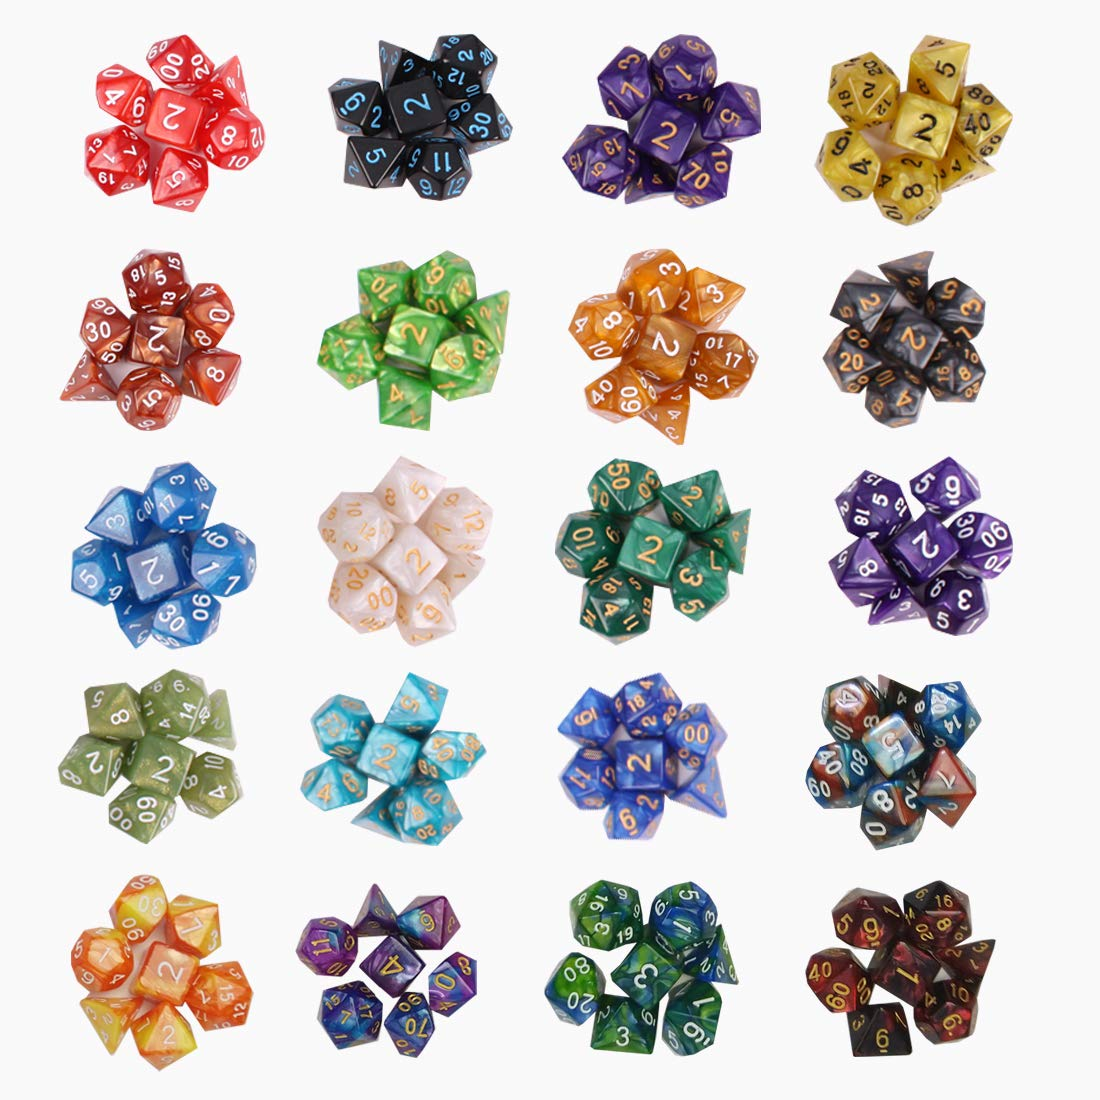 QMAY DND Dice Set, 140PCS Polyhedral Game Dice, 20 Color Double-Colors DND Dice Role Playing Dice for Dungeon and Dragons DND RPG MTG Table Games Dice D4 D8 D10 D12 D20 by QMAY (Image #9)